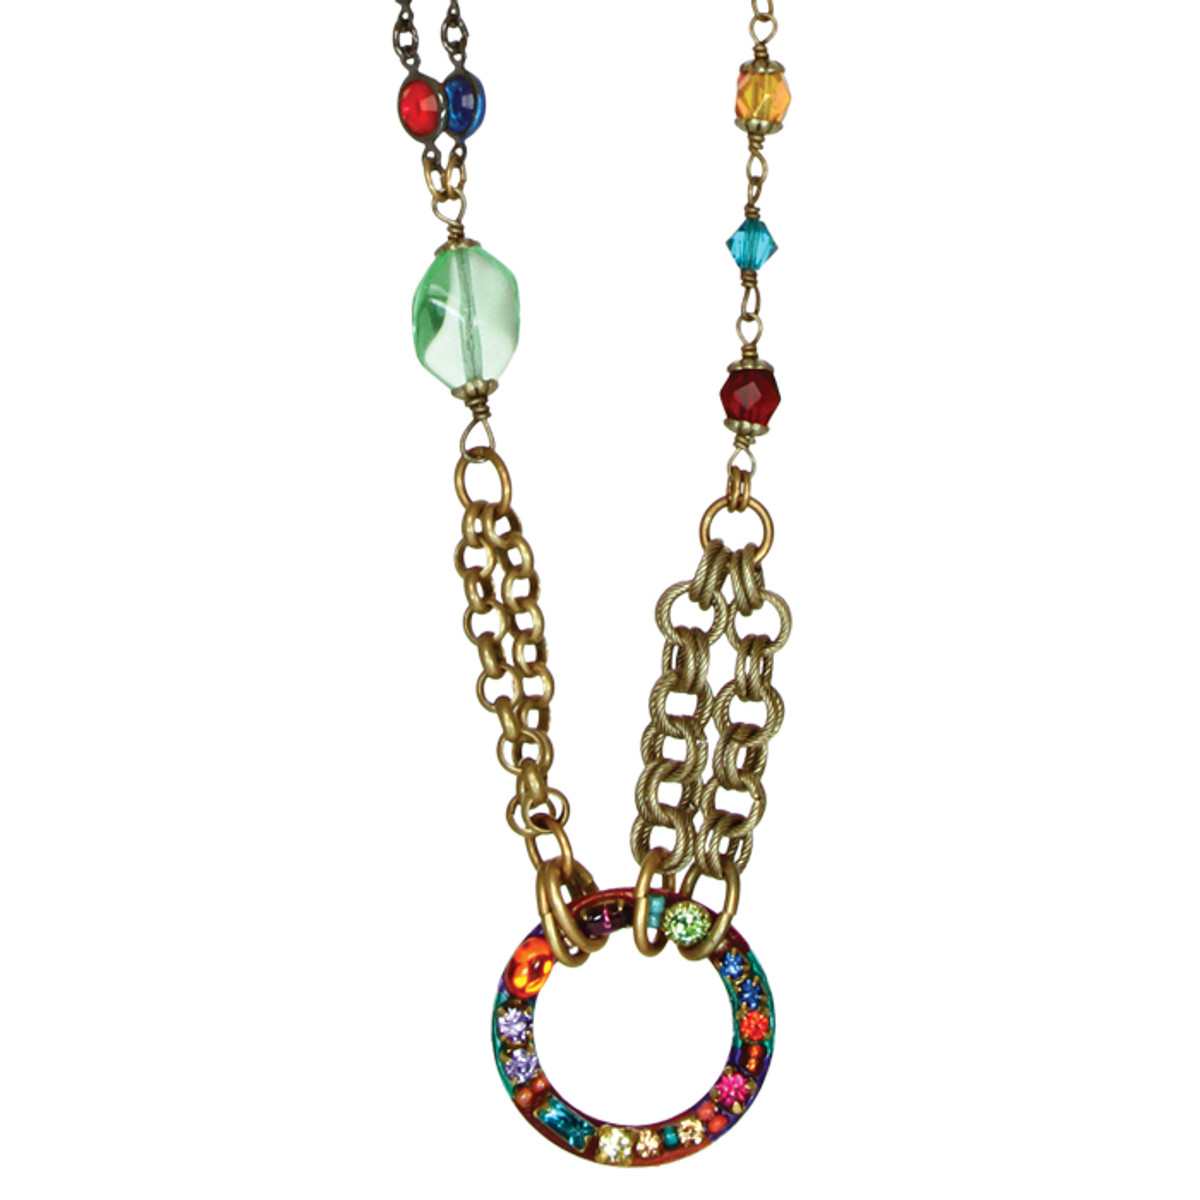 Michal Golan Necklace - Multibright Hoop Mix Chain With Beads